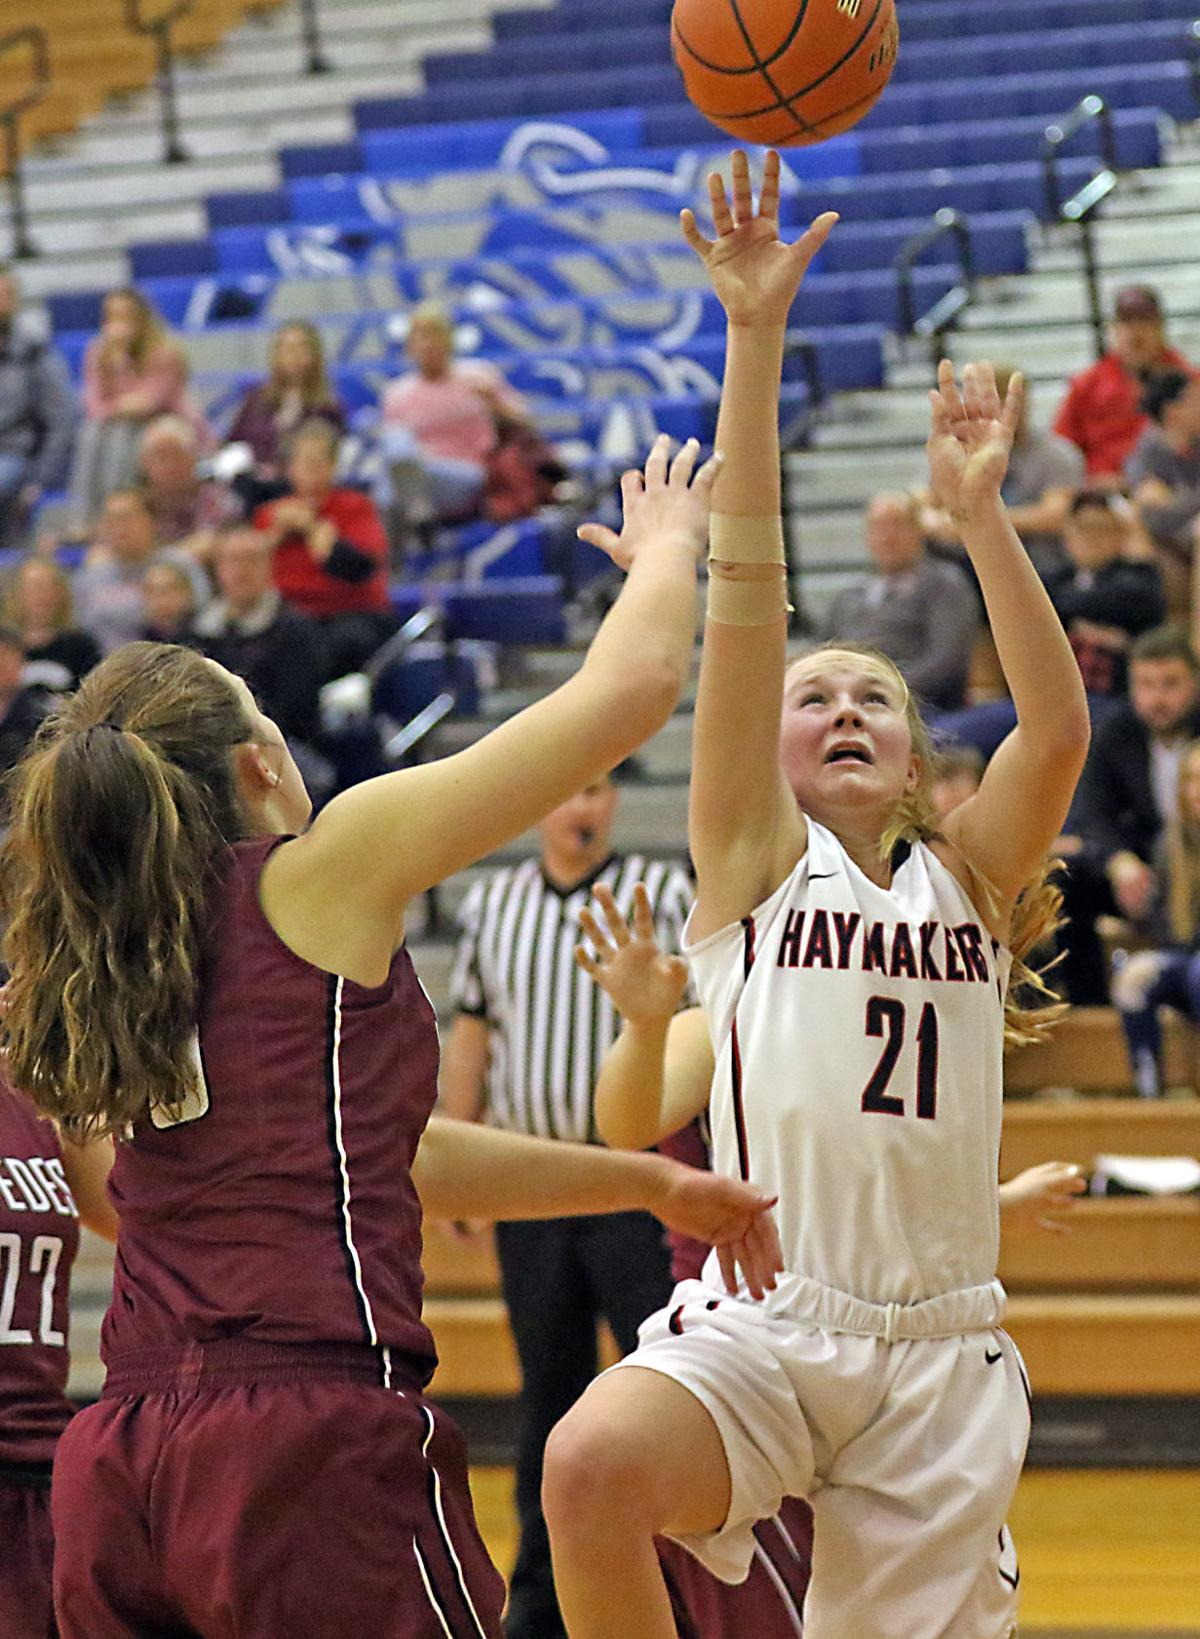 Lady makers win sub districts first round cozad for Wright motors north platte